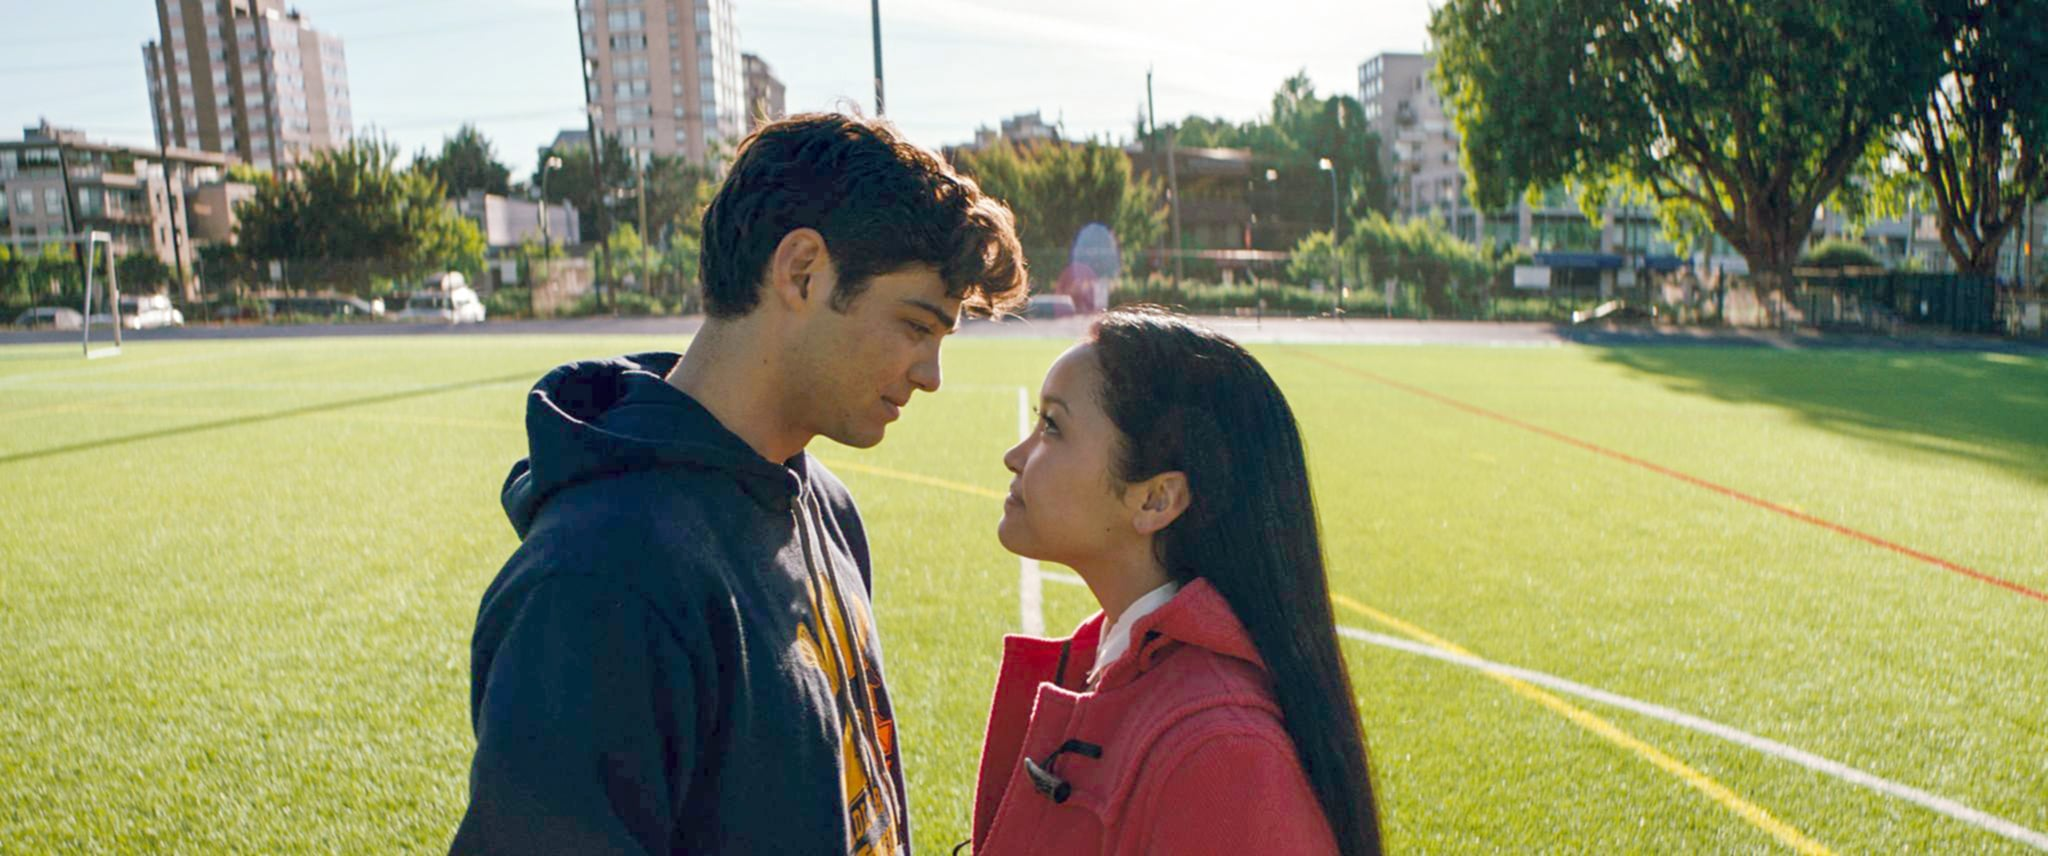 TO ALL THE BOYS I'VE LOVED BEFORE, from left: Noah Centineo, Lana Condor, 2018.  Netflix /Courtesy Everett Collection